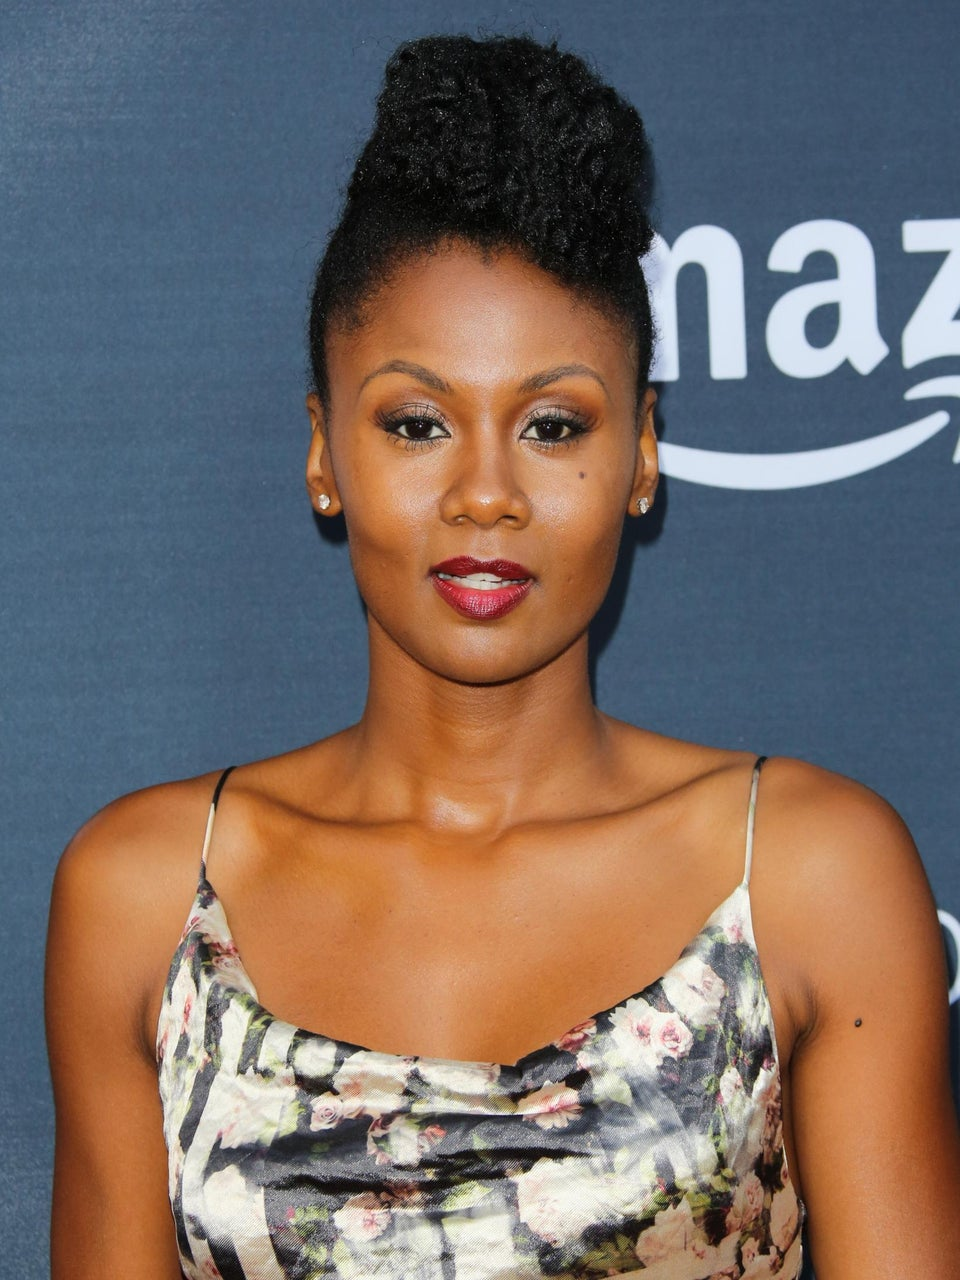 EXCLUSIVE: Emayatzy Corinealdi Discusses New Role in 'Hand of God,' Finding Love in Hollywood